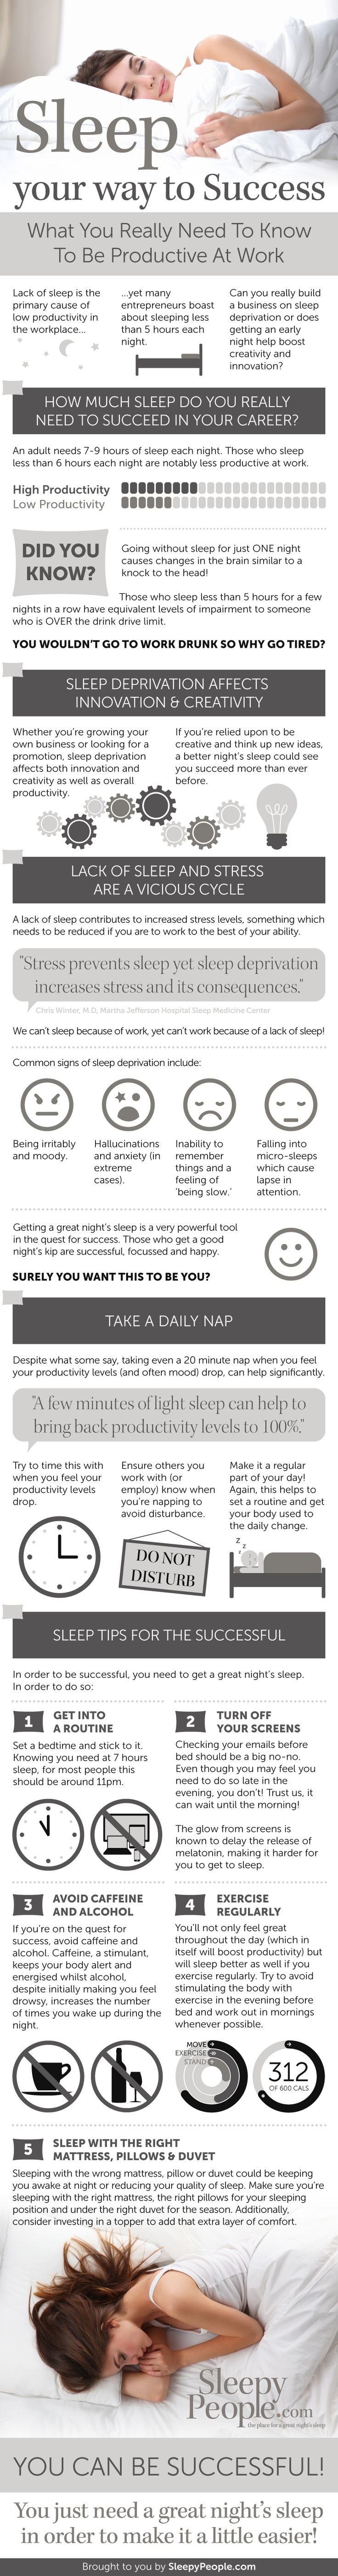 Understand how a good nights sleep can help you become productive at work.